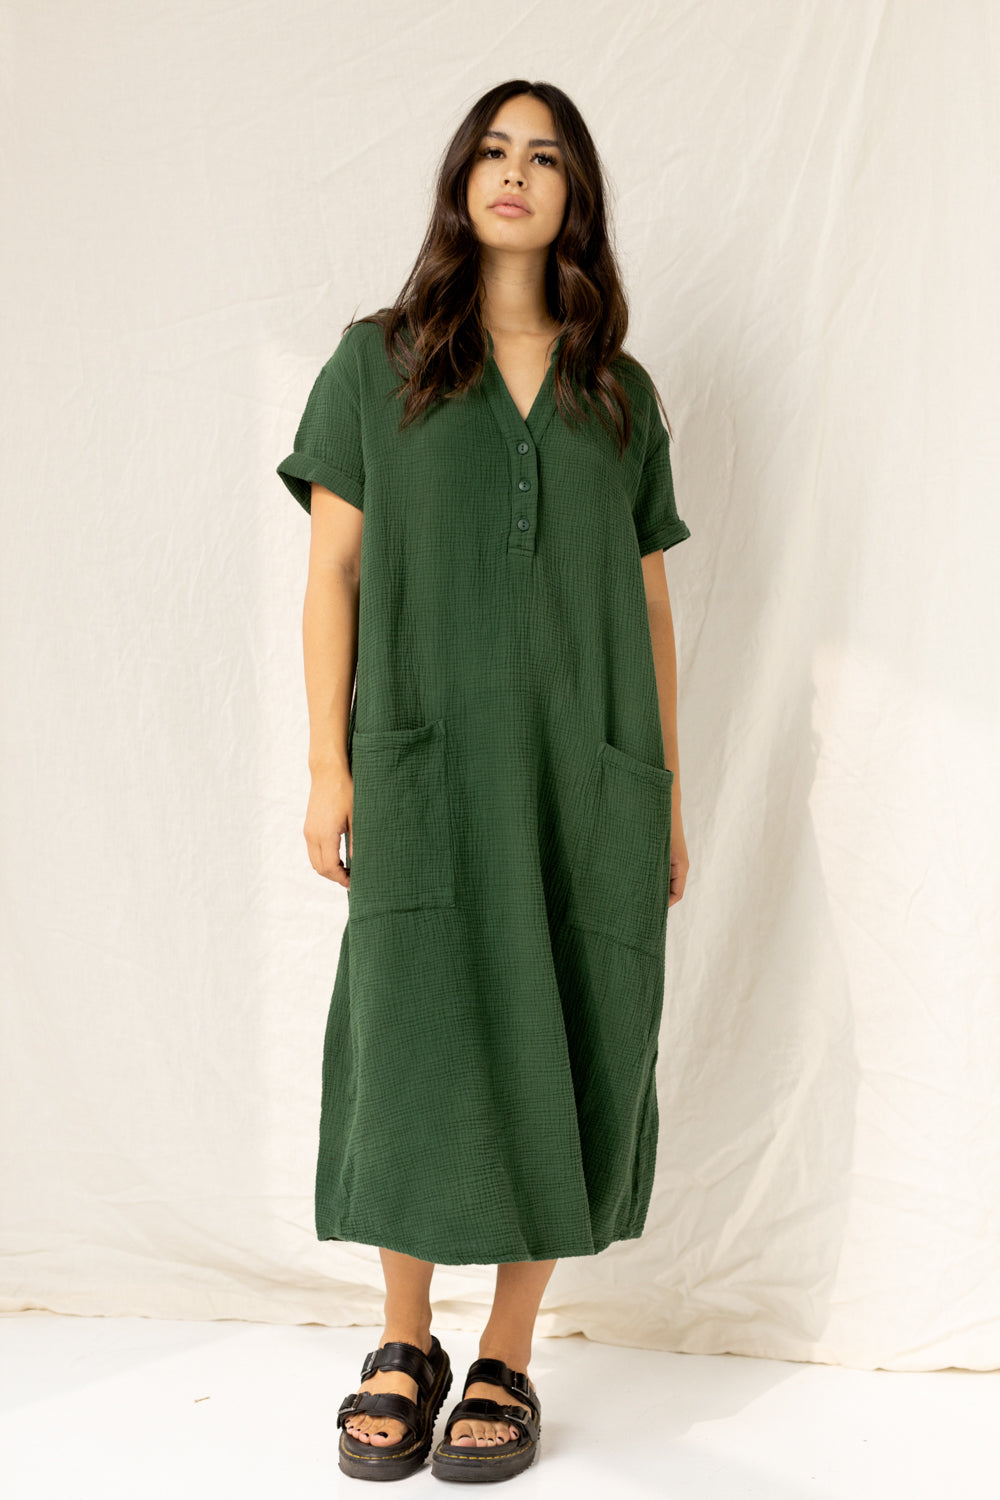 The Everyday Dress in Kombu